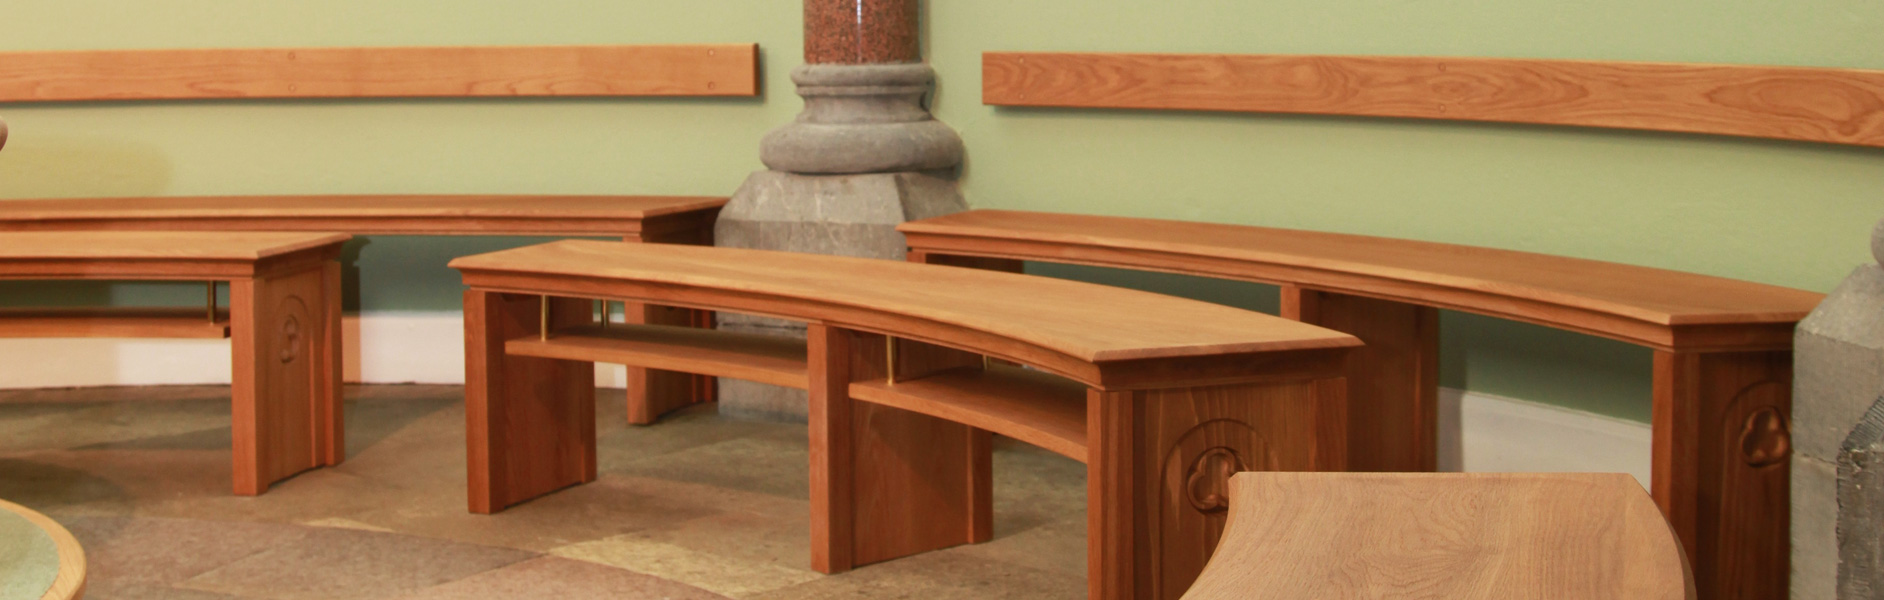 ICS Benches in Sligo Cathedral